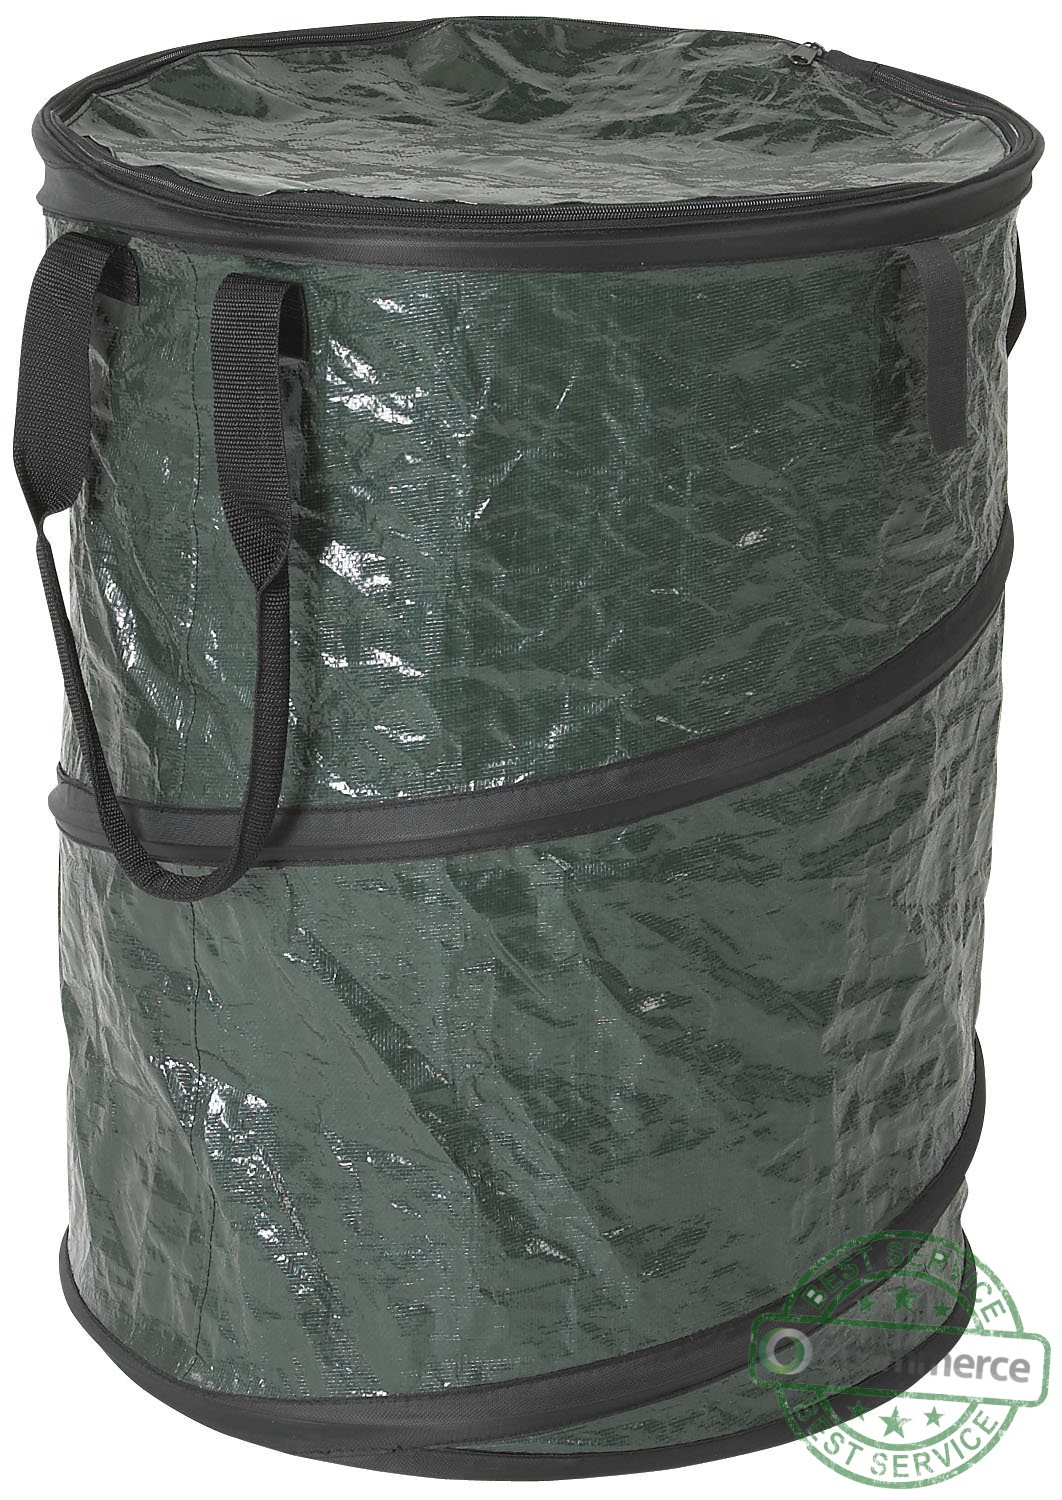 Stansport Collapsible Carry All Green Trash Can Bin Garbage Camping Campfire Ebay